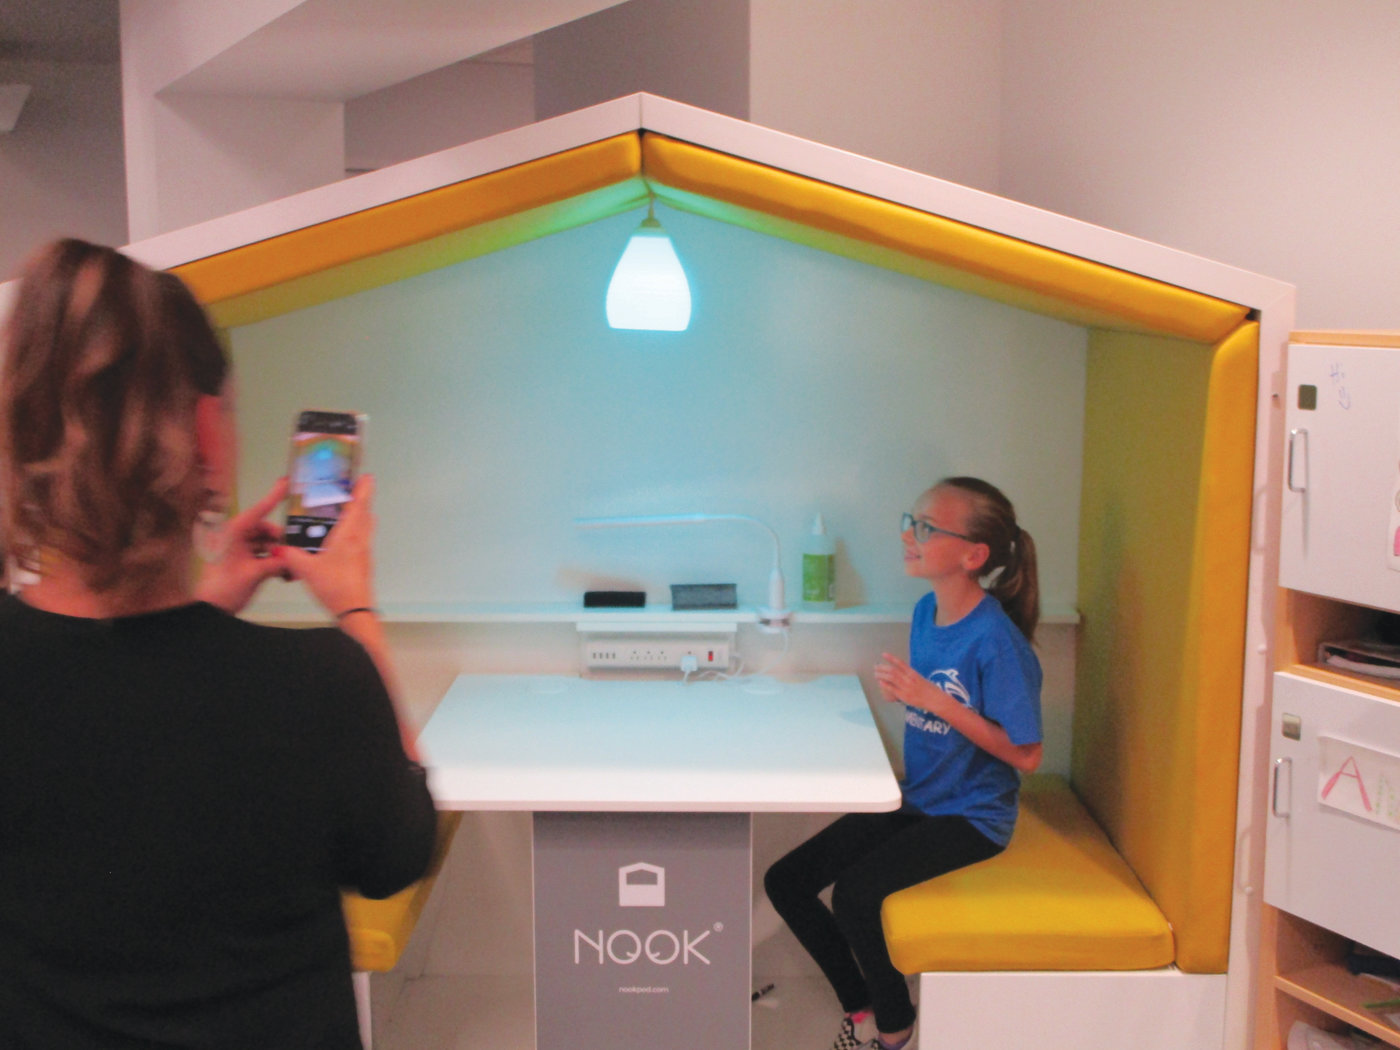 LEARNING NOOK: Fifth-grade student Ava Chiarello demonstrates the learning nook that is part of the new Learning Community wing at Eden Park Elementary School.